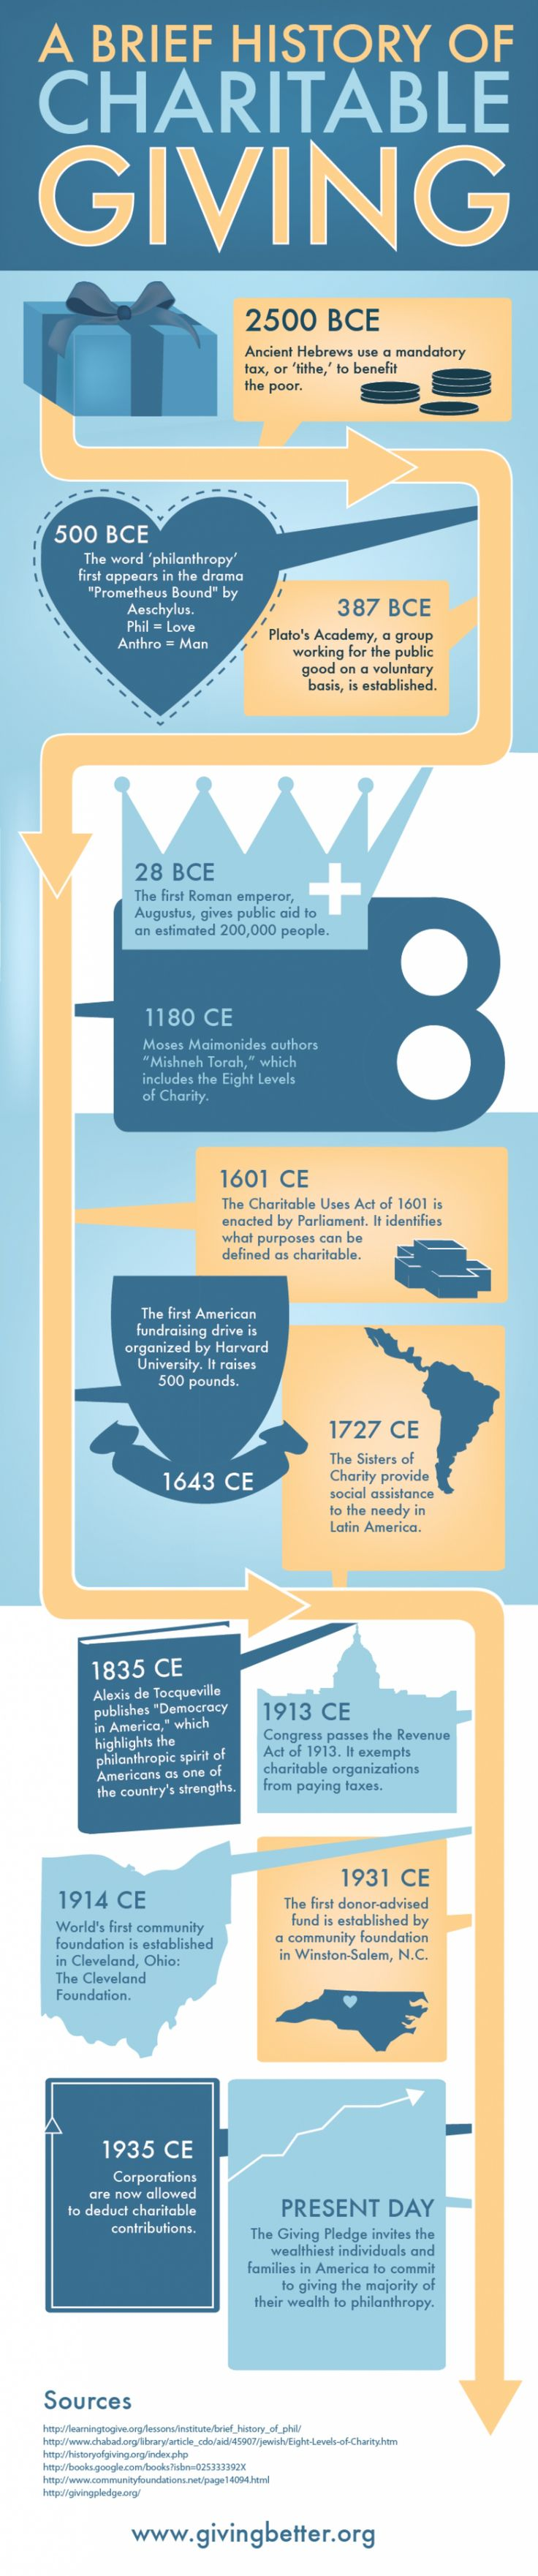 """""""A Brief History of Charitable Giving"""" 